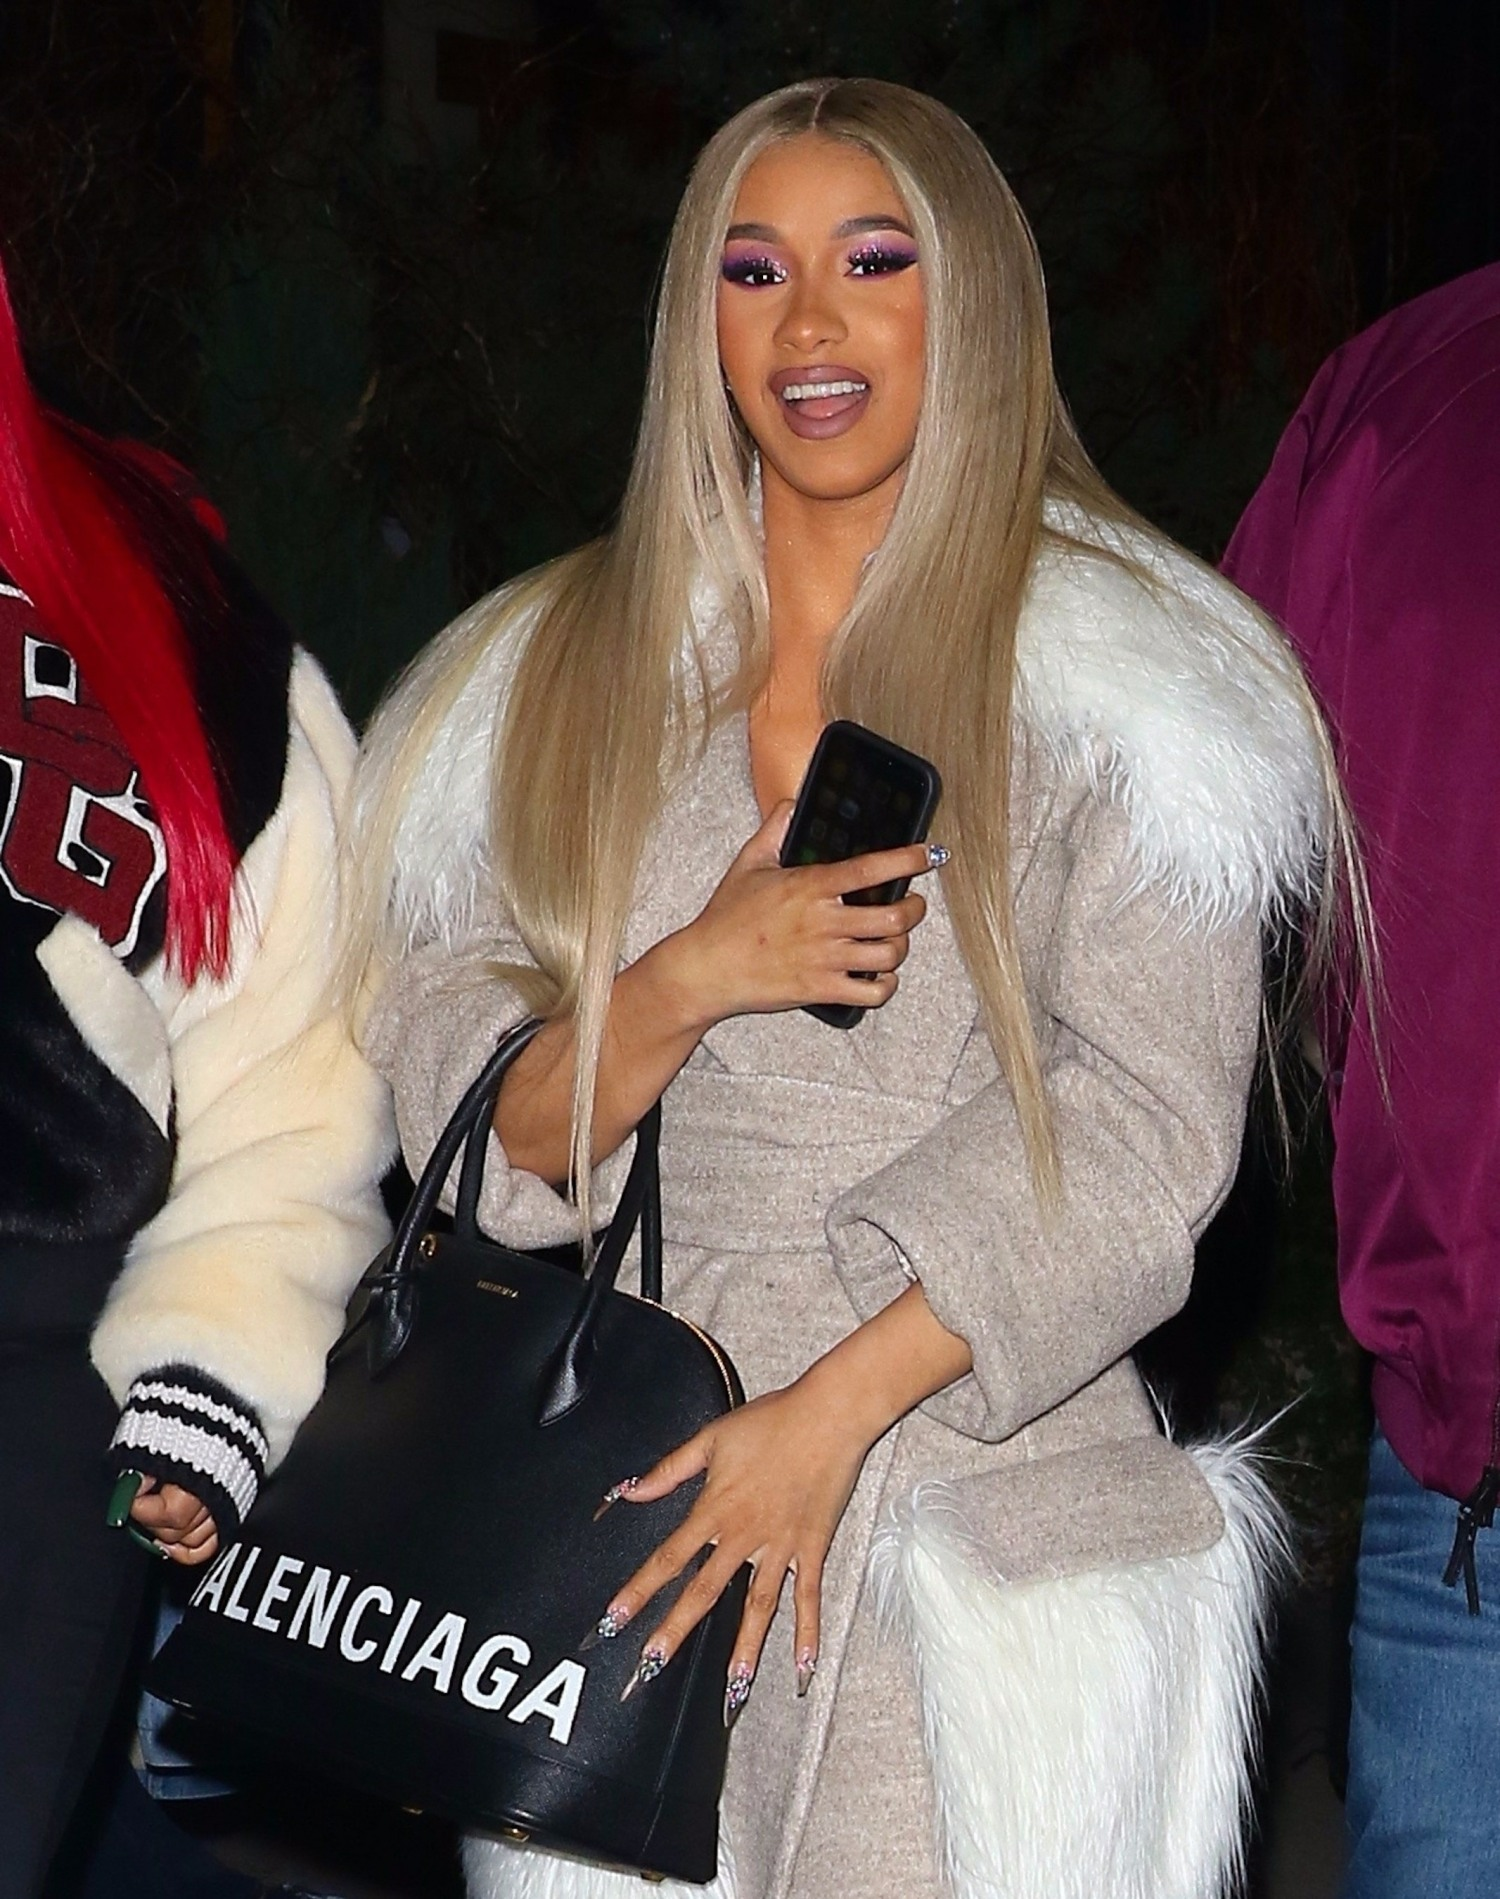 Cardi B attends Z100's Jingle Ball at Madison Square Garden